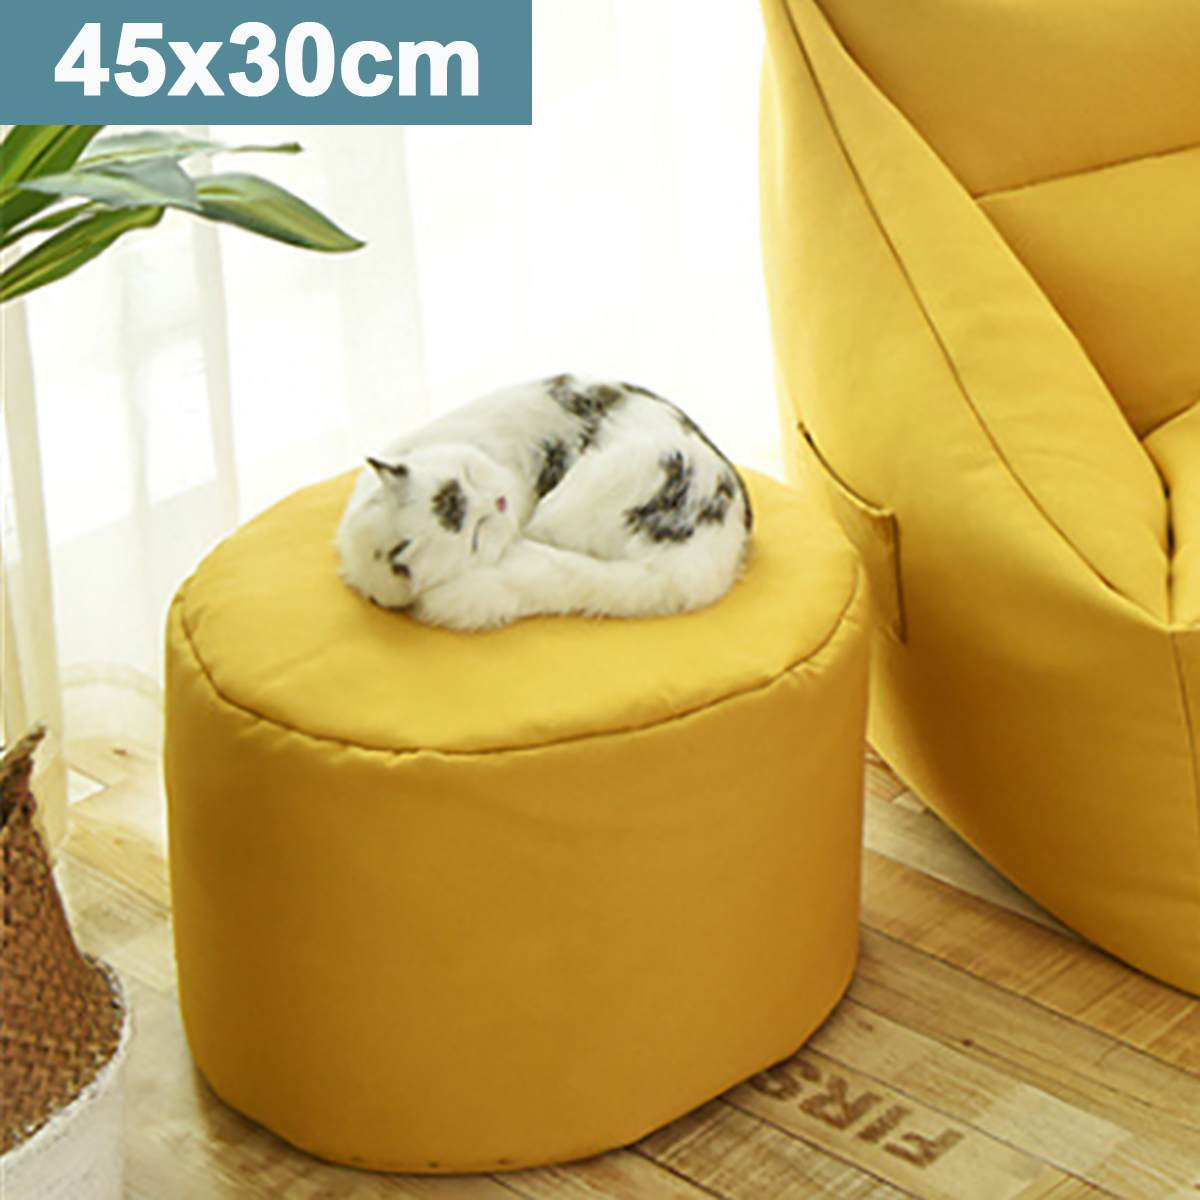 Lazy BeanBag Sofas Footrest Cover Waterproof Animal Storage Toy Bean Bag Solid Color Chair Beanbag Sofas Foot Stools (Only Cover